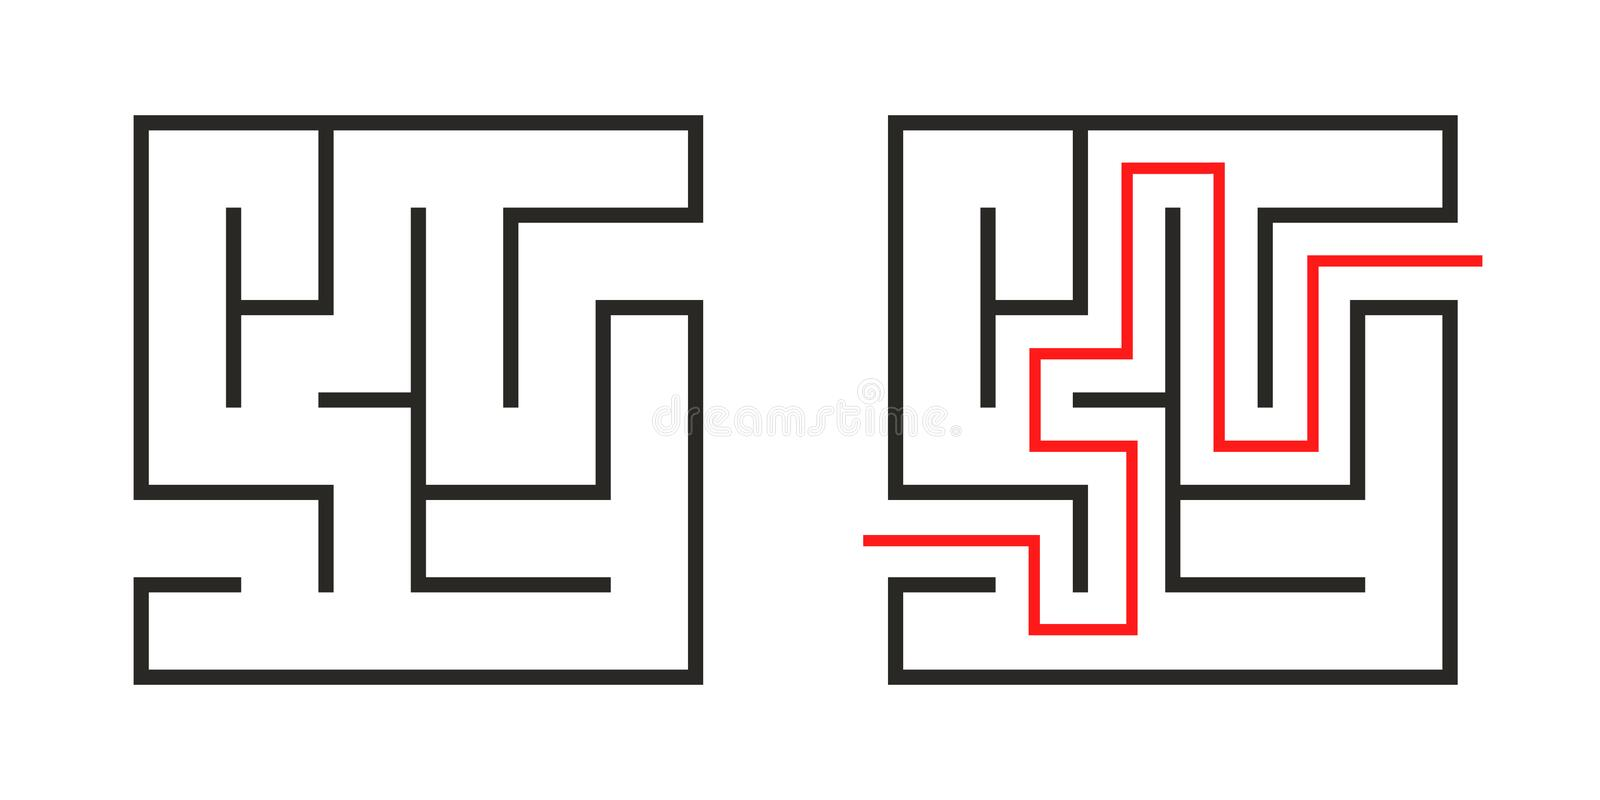 Education logic game labyrinth for kids. Find right way. Isolated simple square maze black line on white background. vector illustration